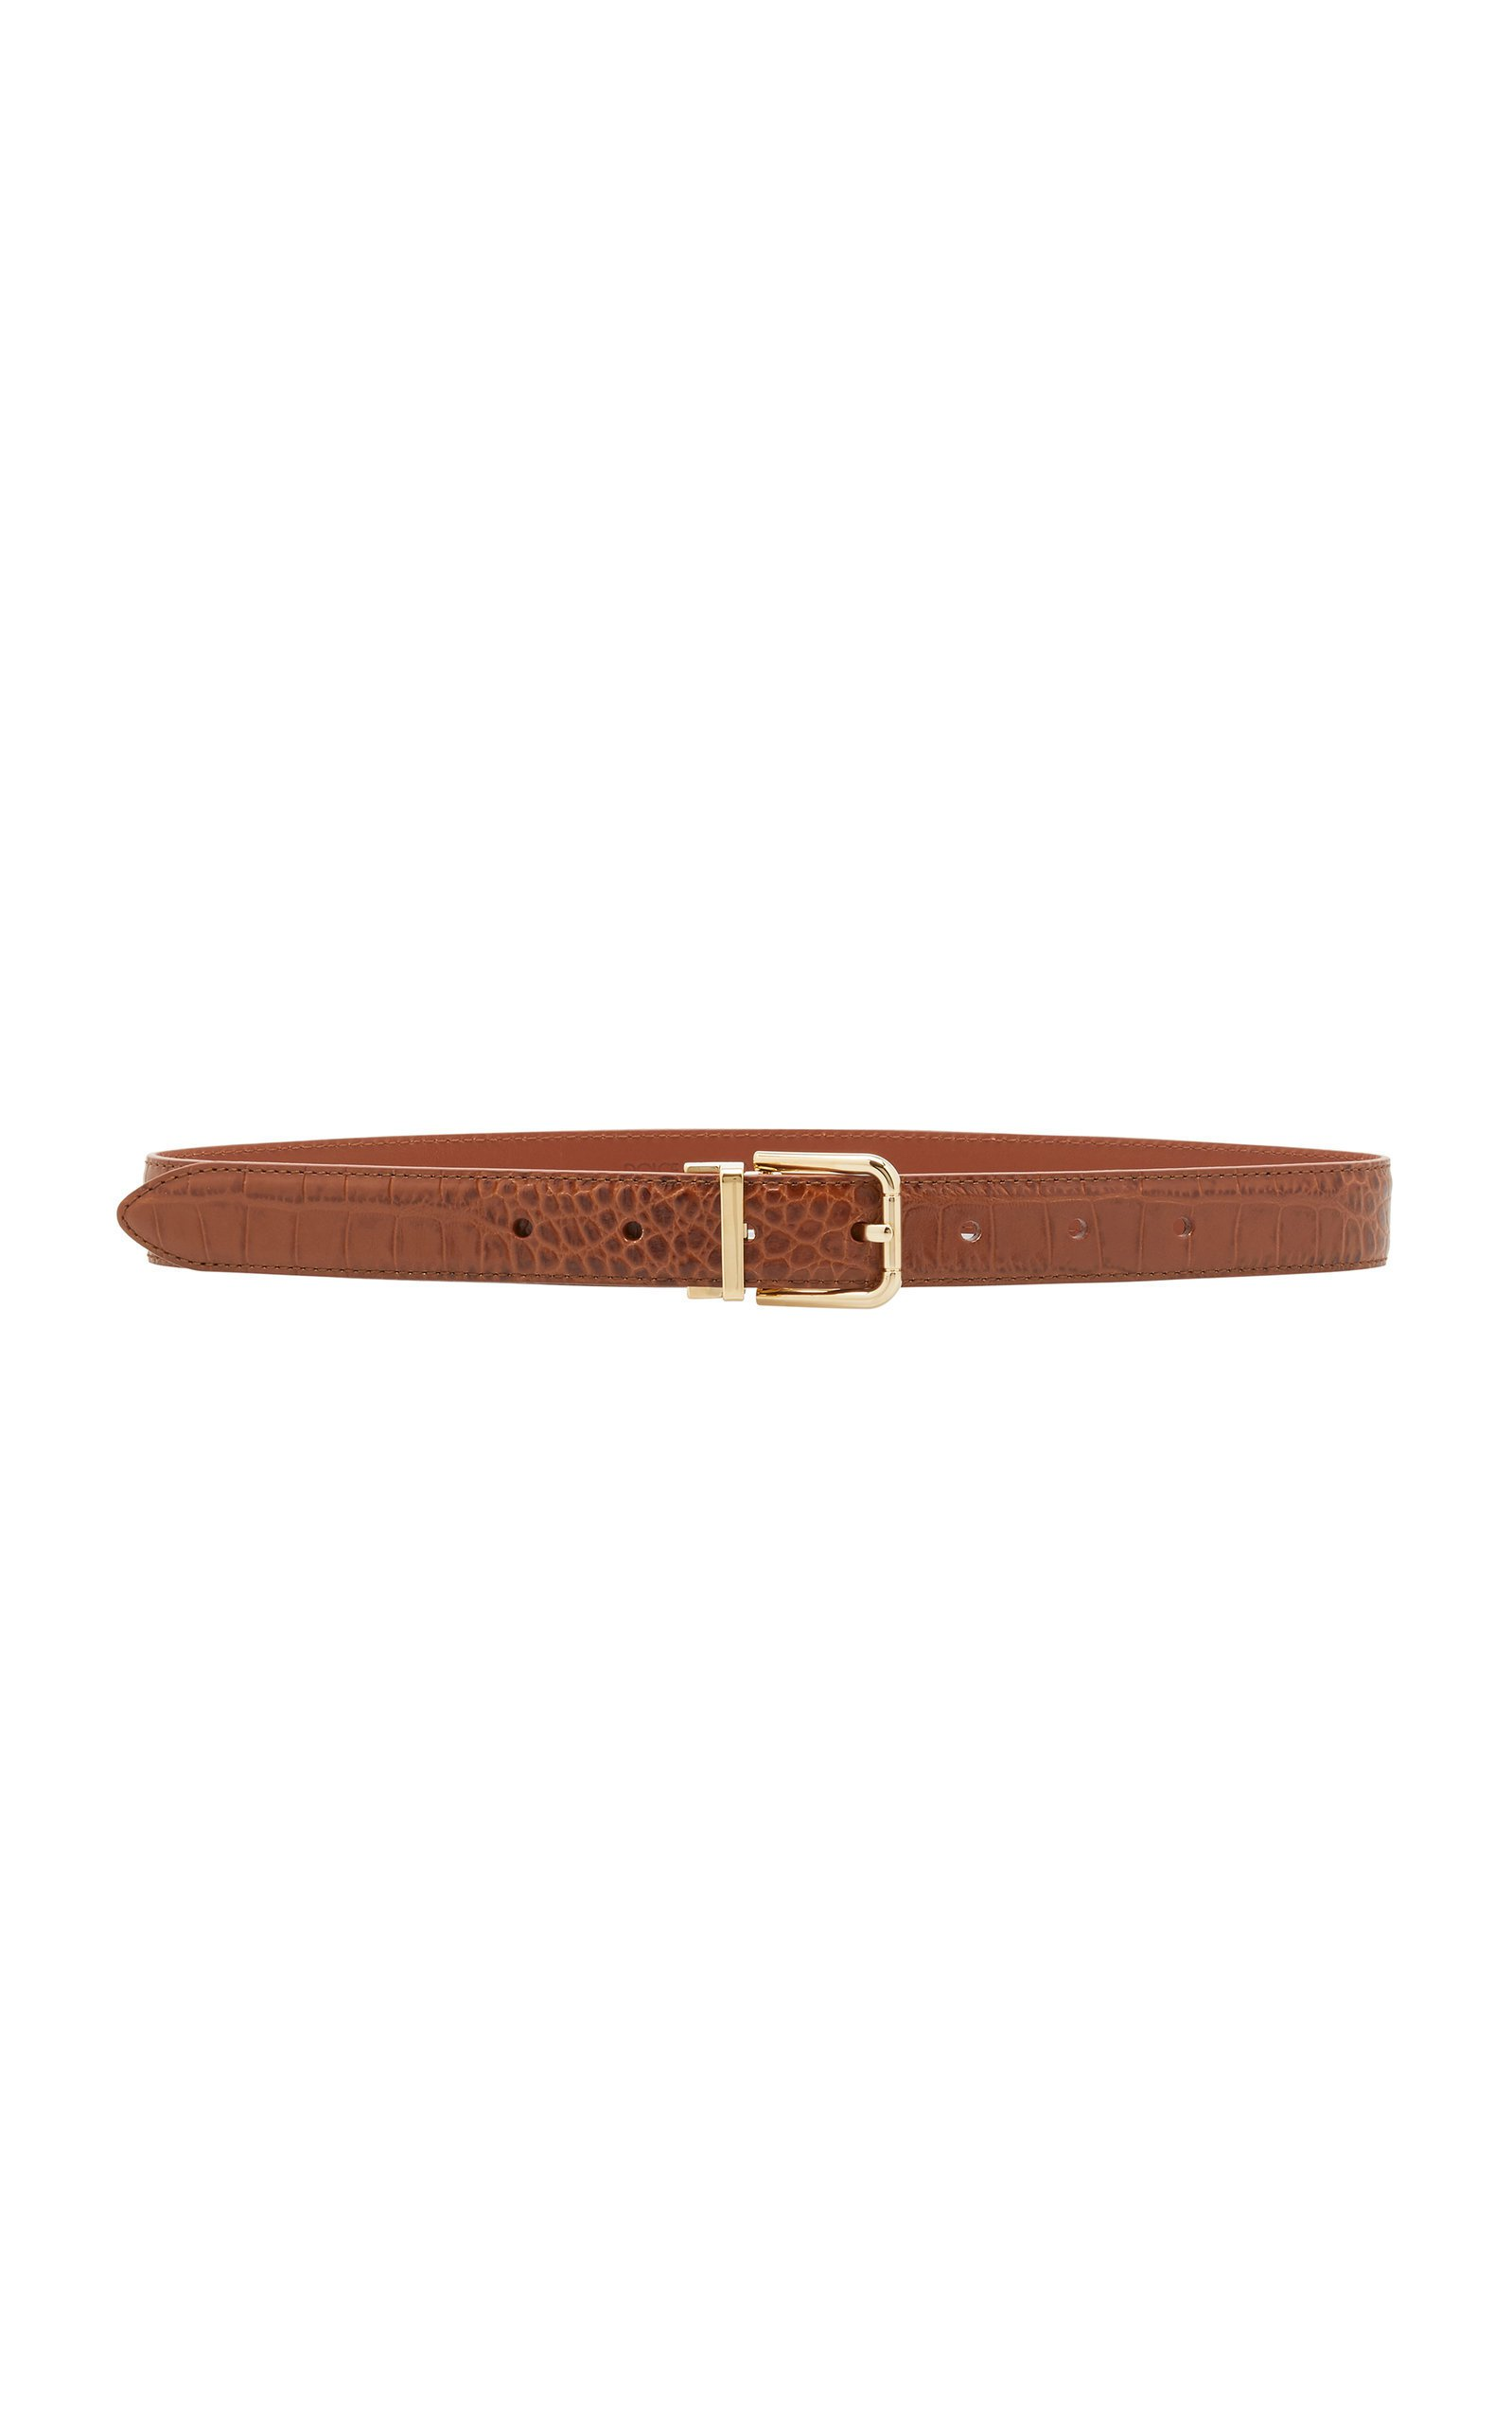 Dolce & Gabbana Croc-Effect Leather Belt Size: 65 cm